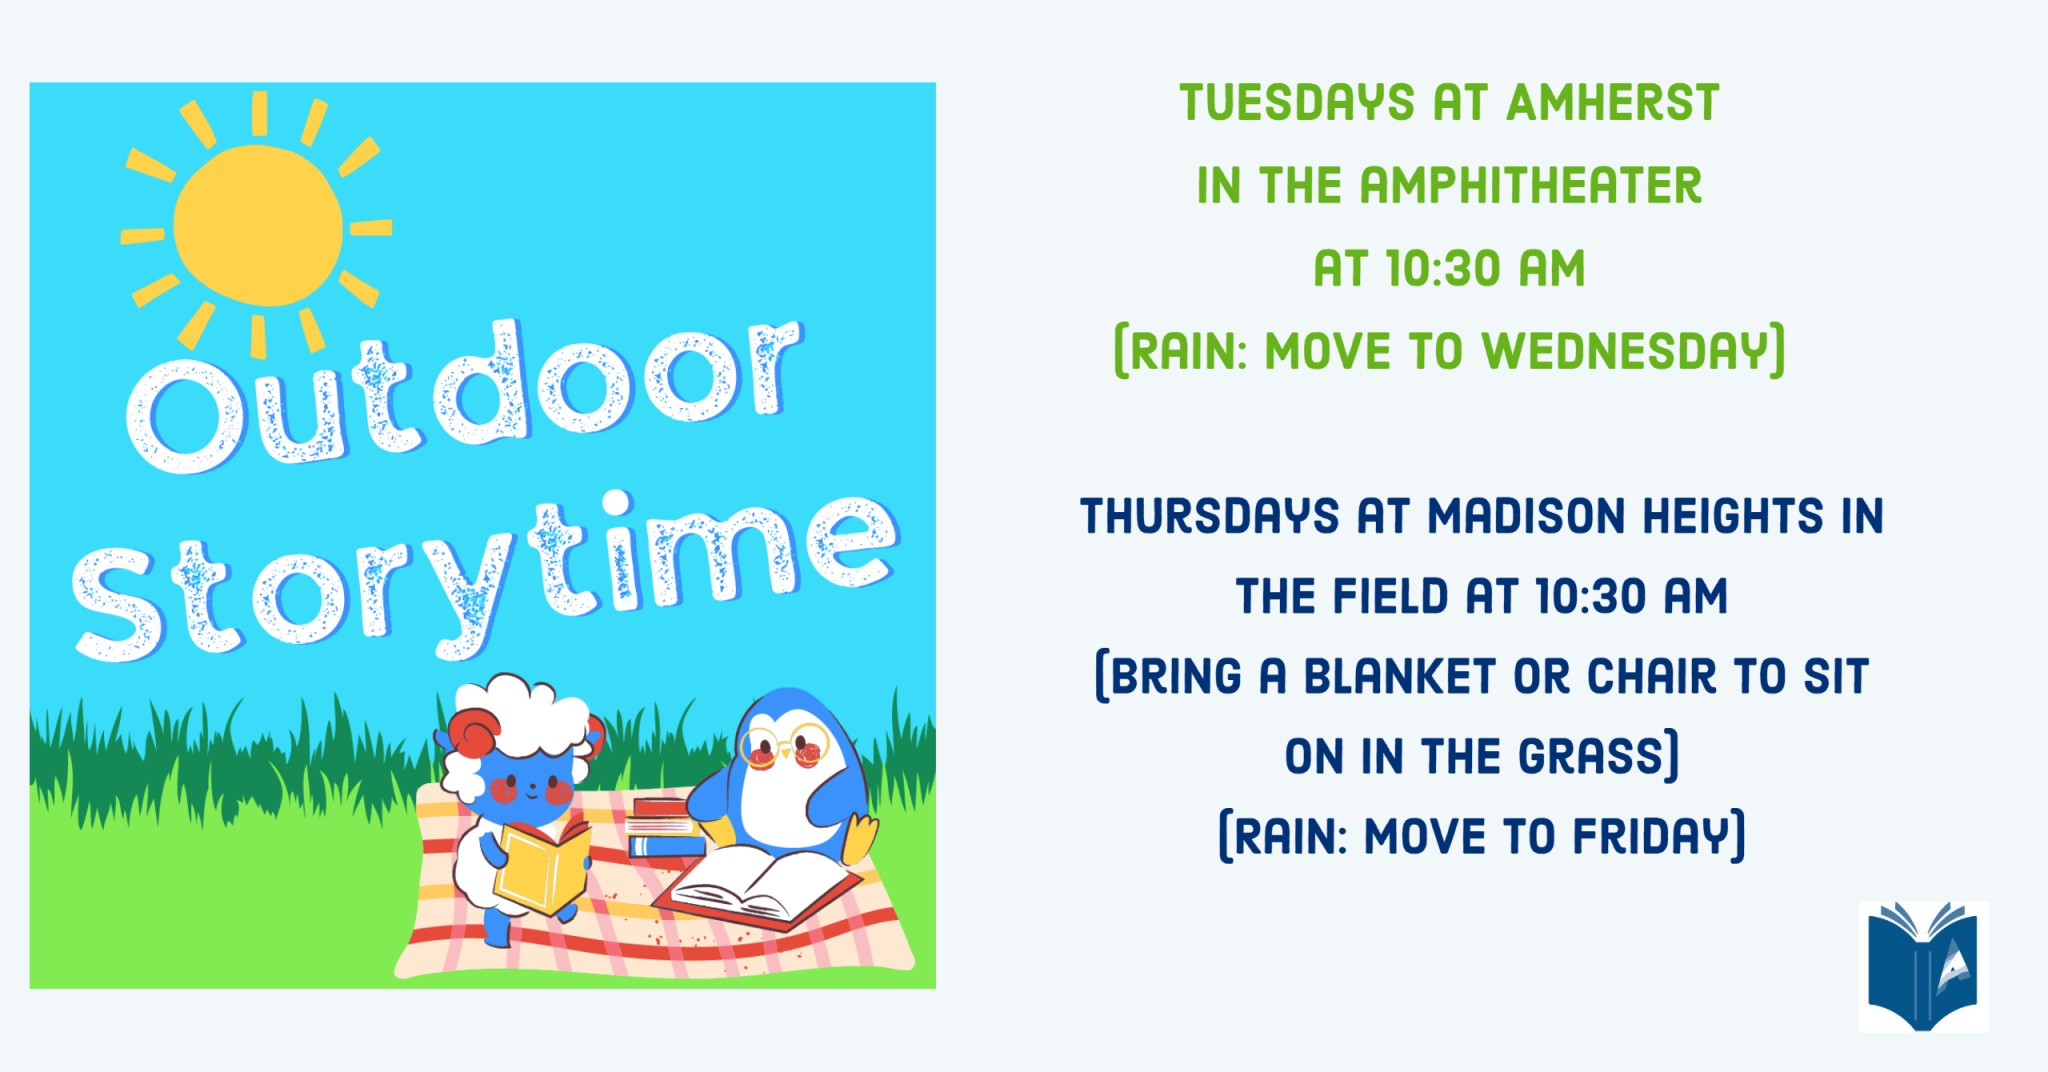 Outdoor Storytime: Tuesdays at Amherst in the Amphitheater at 10:30 am (Rain: move to Wednesday), Thursdays at Madison Heights in the field at 10:30 am (bring a blank or chair to sit on in the grass) (Rain: move to Friday)